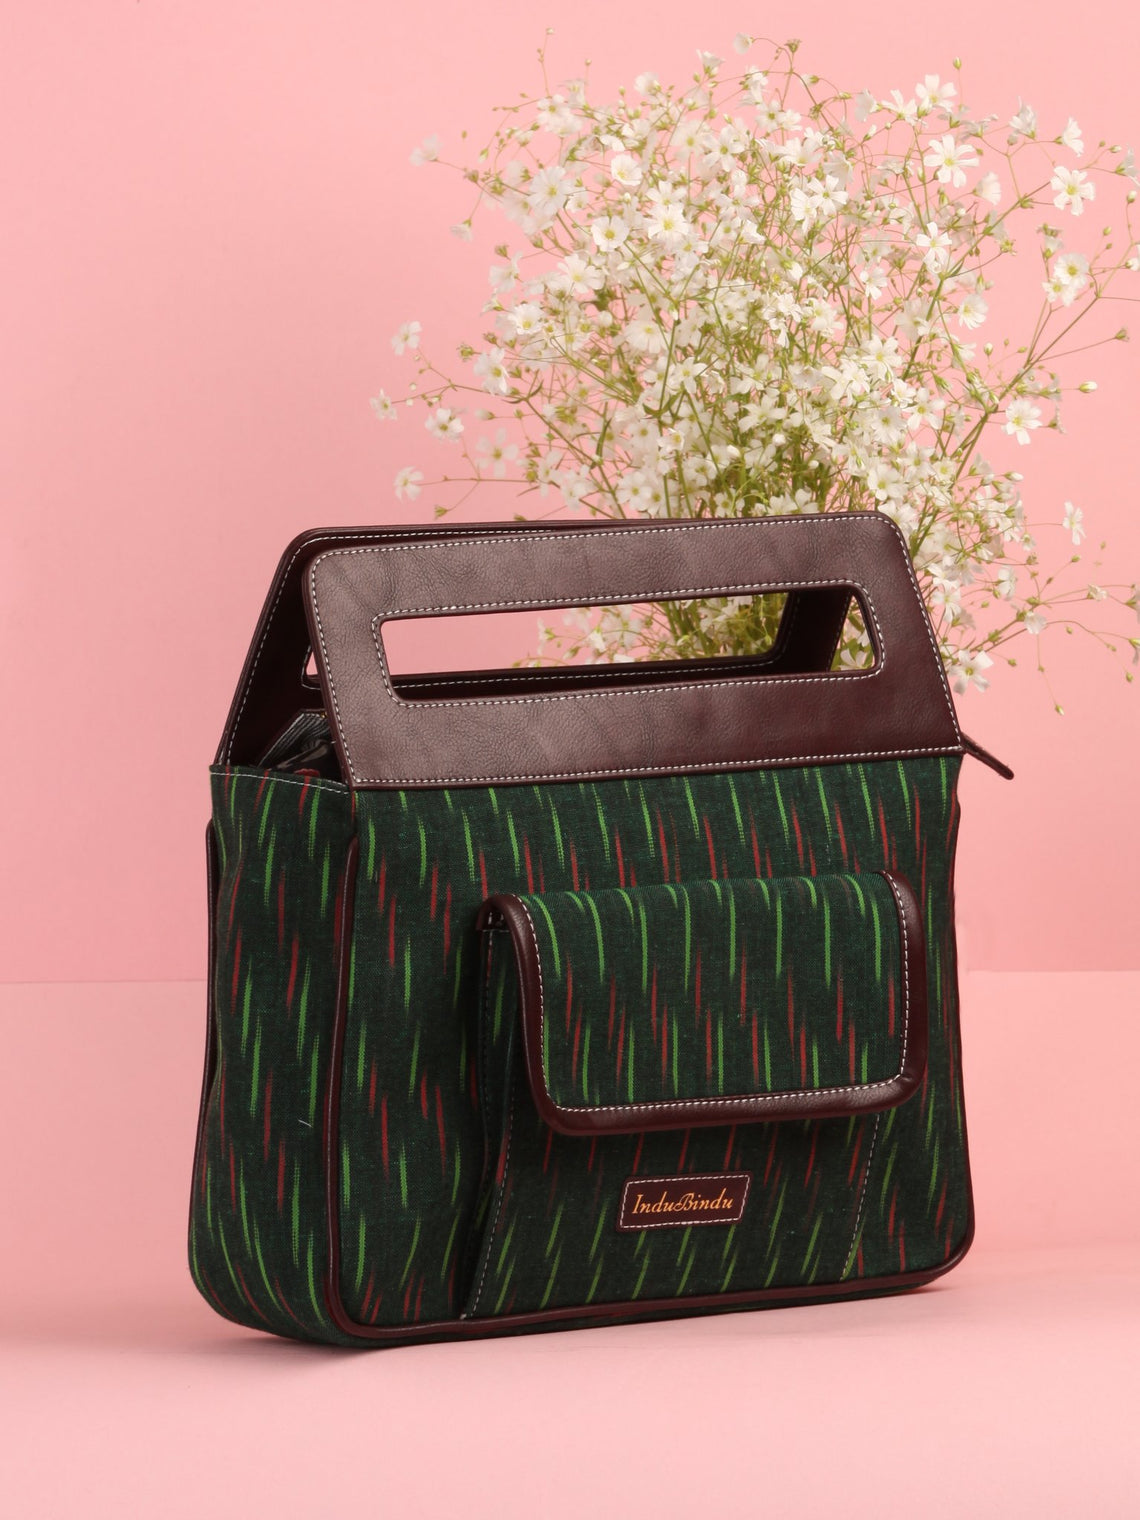 Bottle Green Ikat Baguette Bag with Vegan Leather Top Handles - B0906